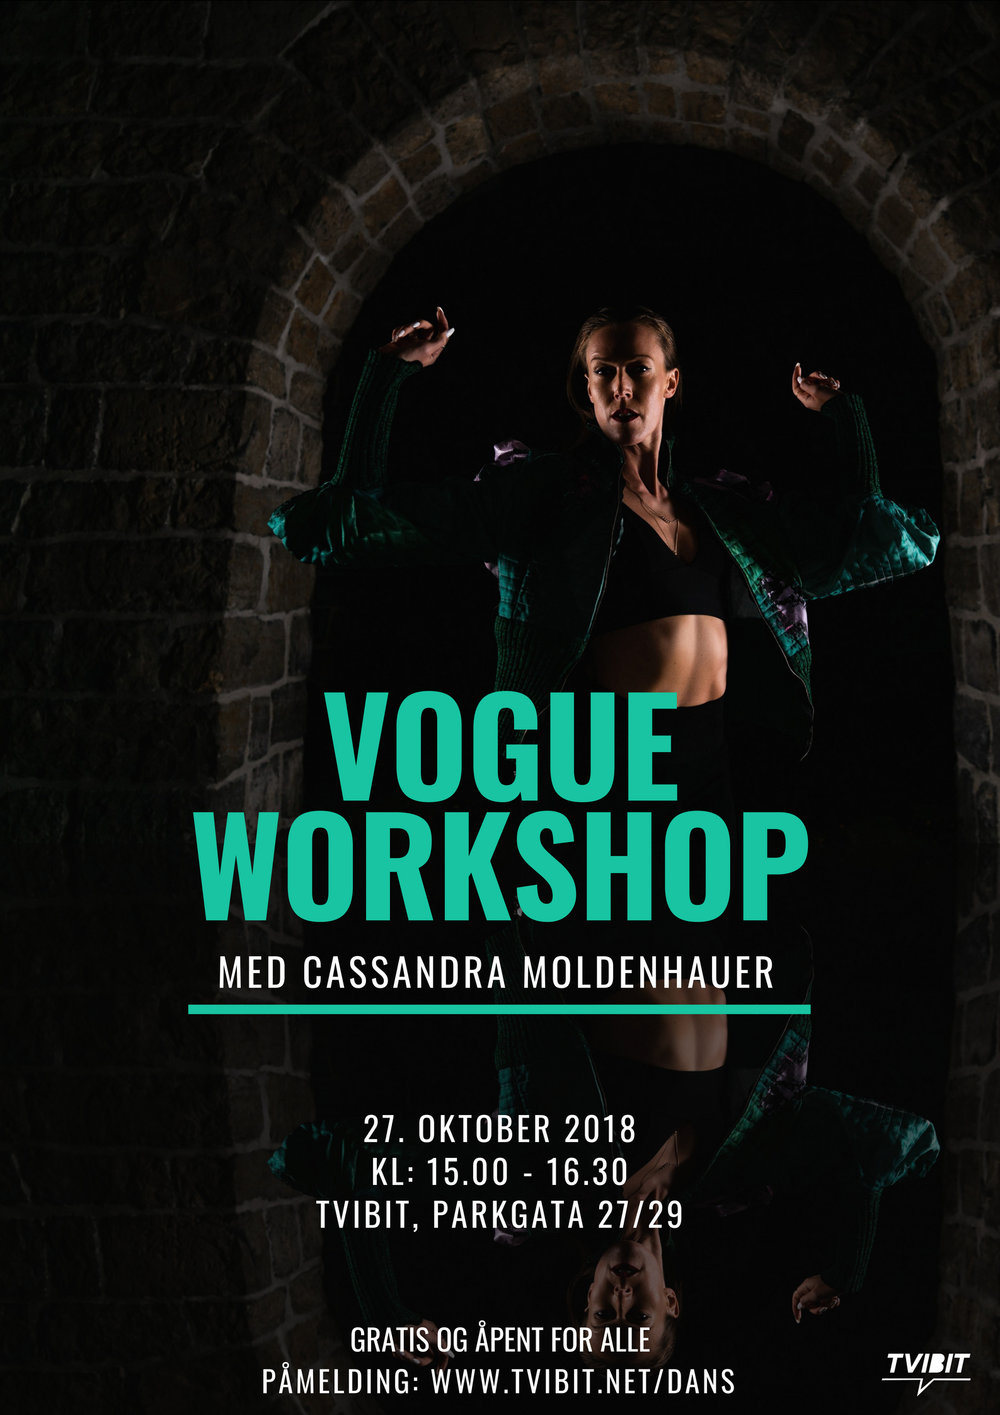 Vogue workshop 27.10.18 plakat.jpg.jpg